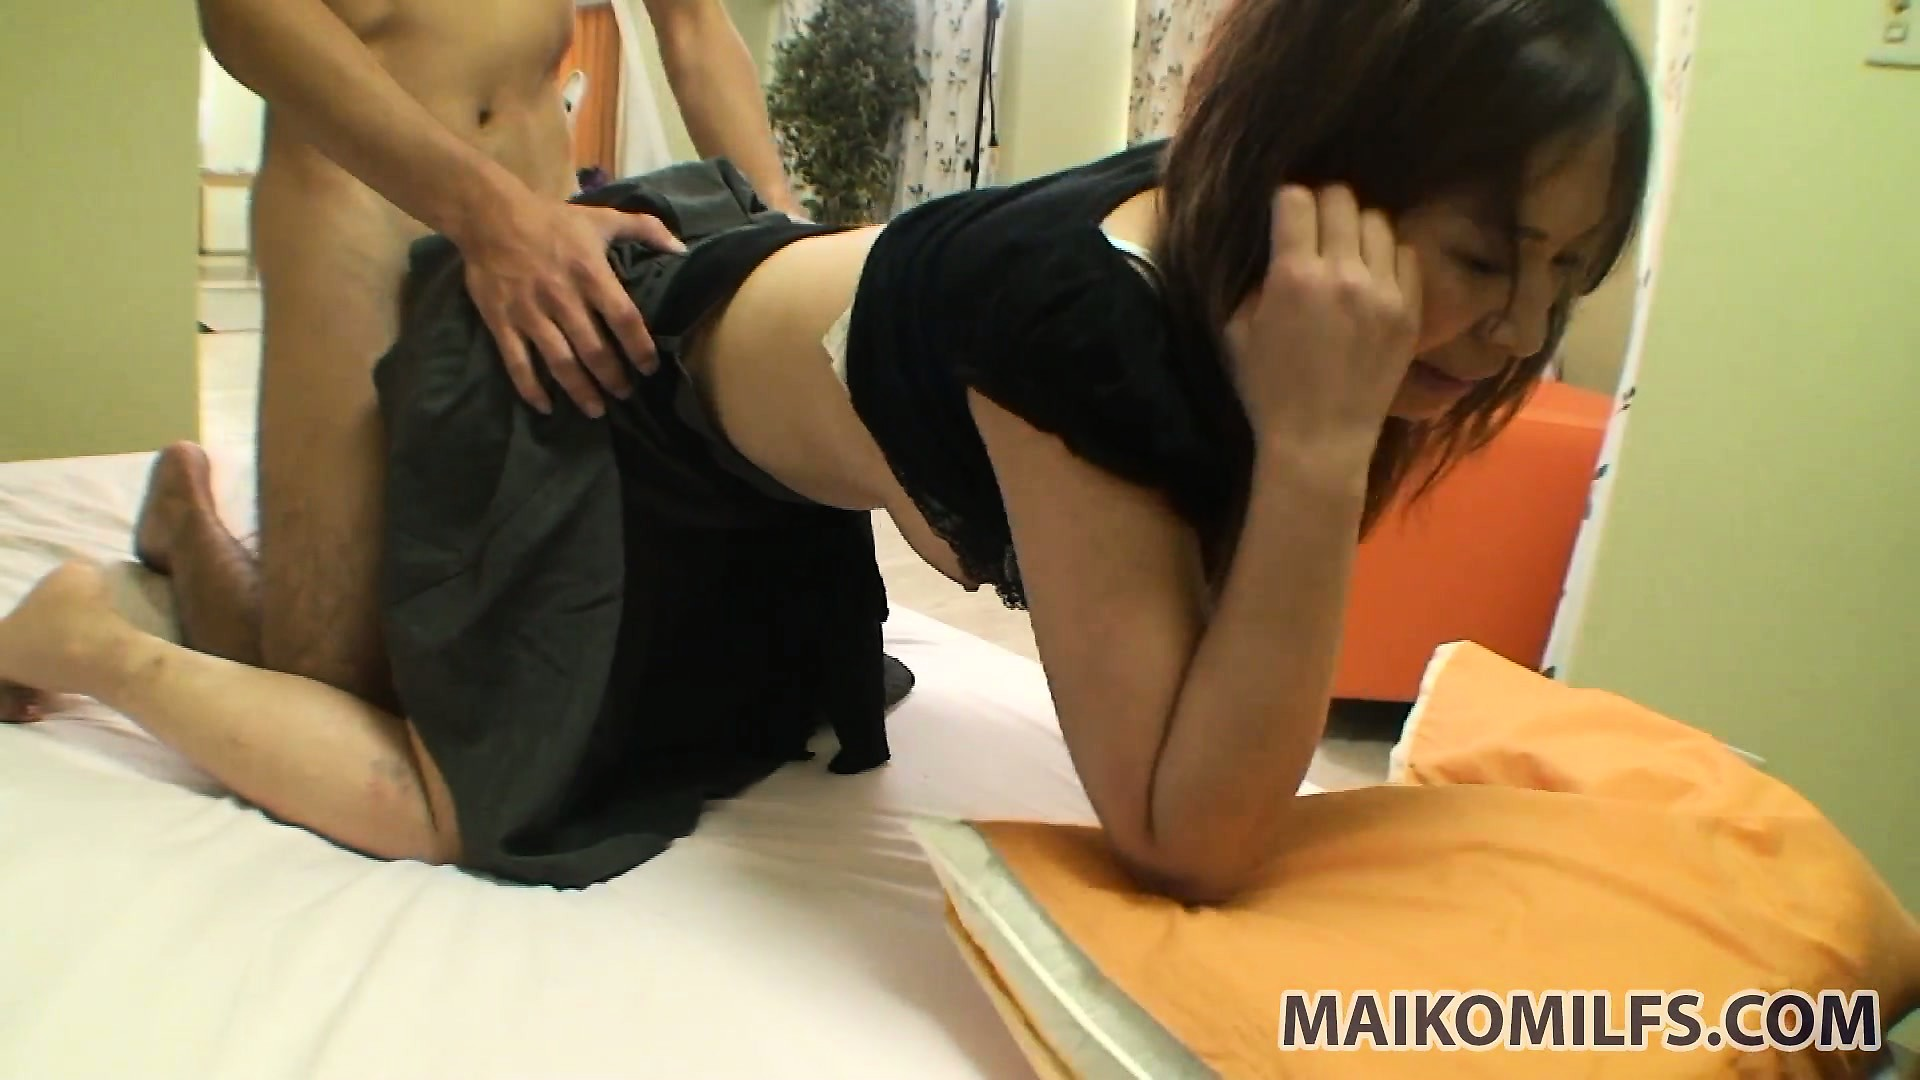 Porn Tube of Pulling A Lovely Asian Chick's Skirt Up And Plowing Her Fresh Snatch